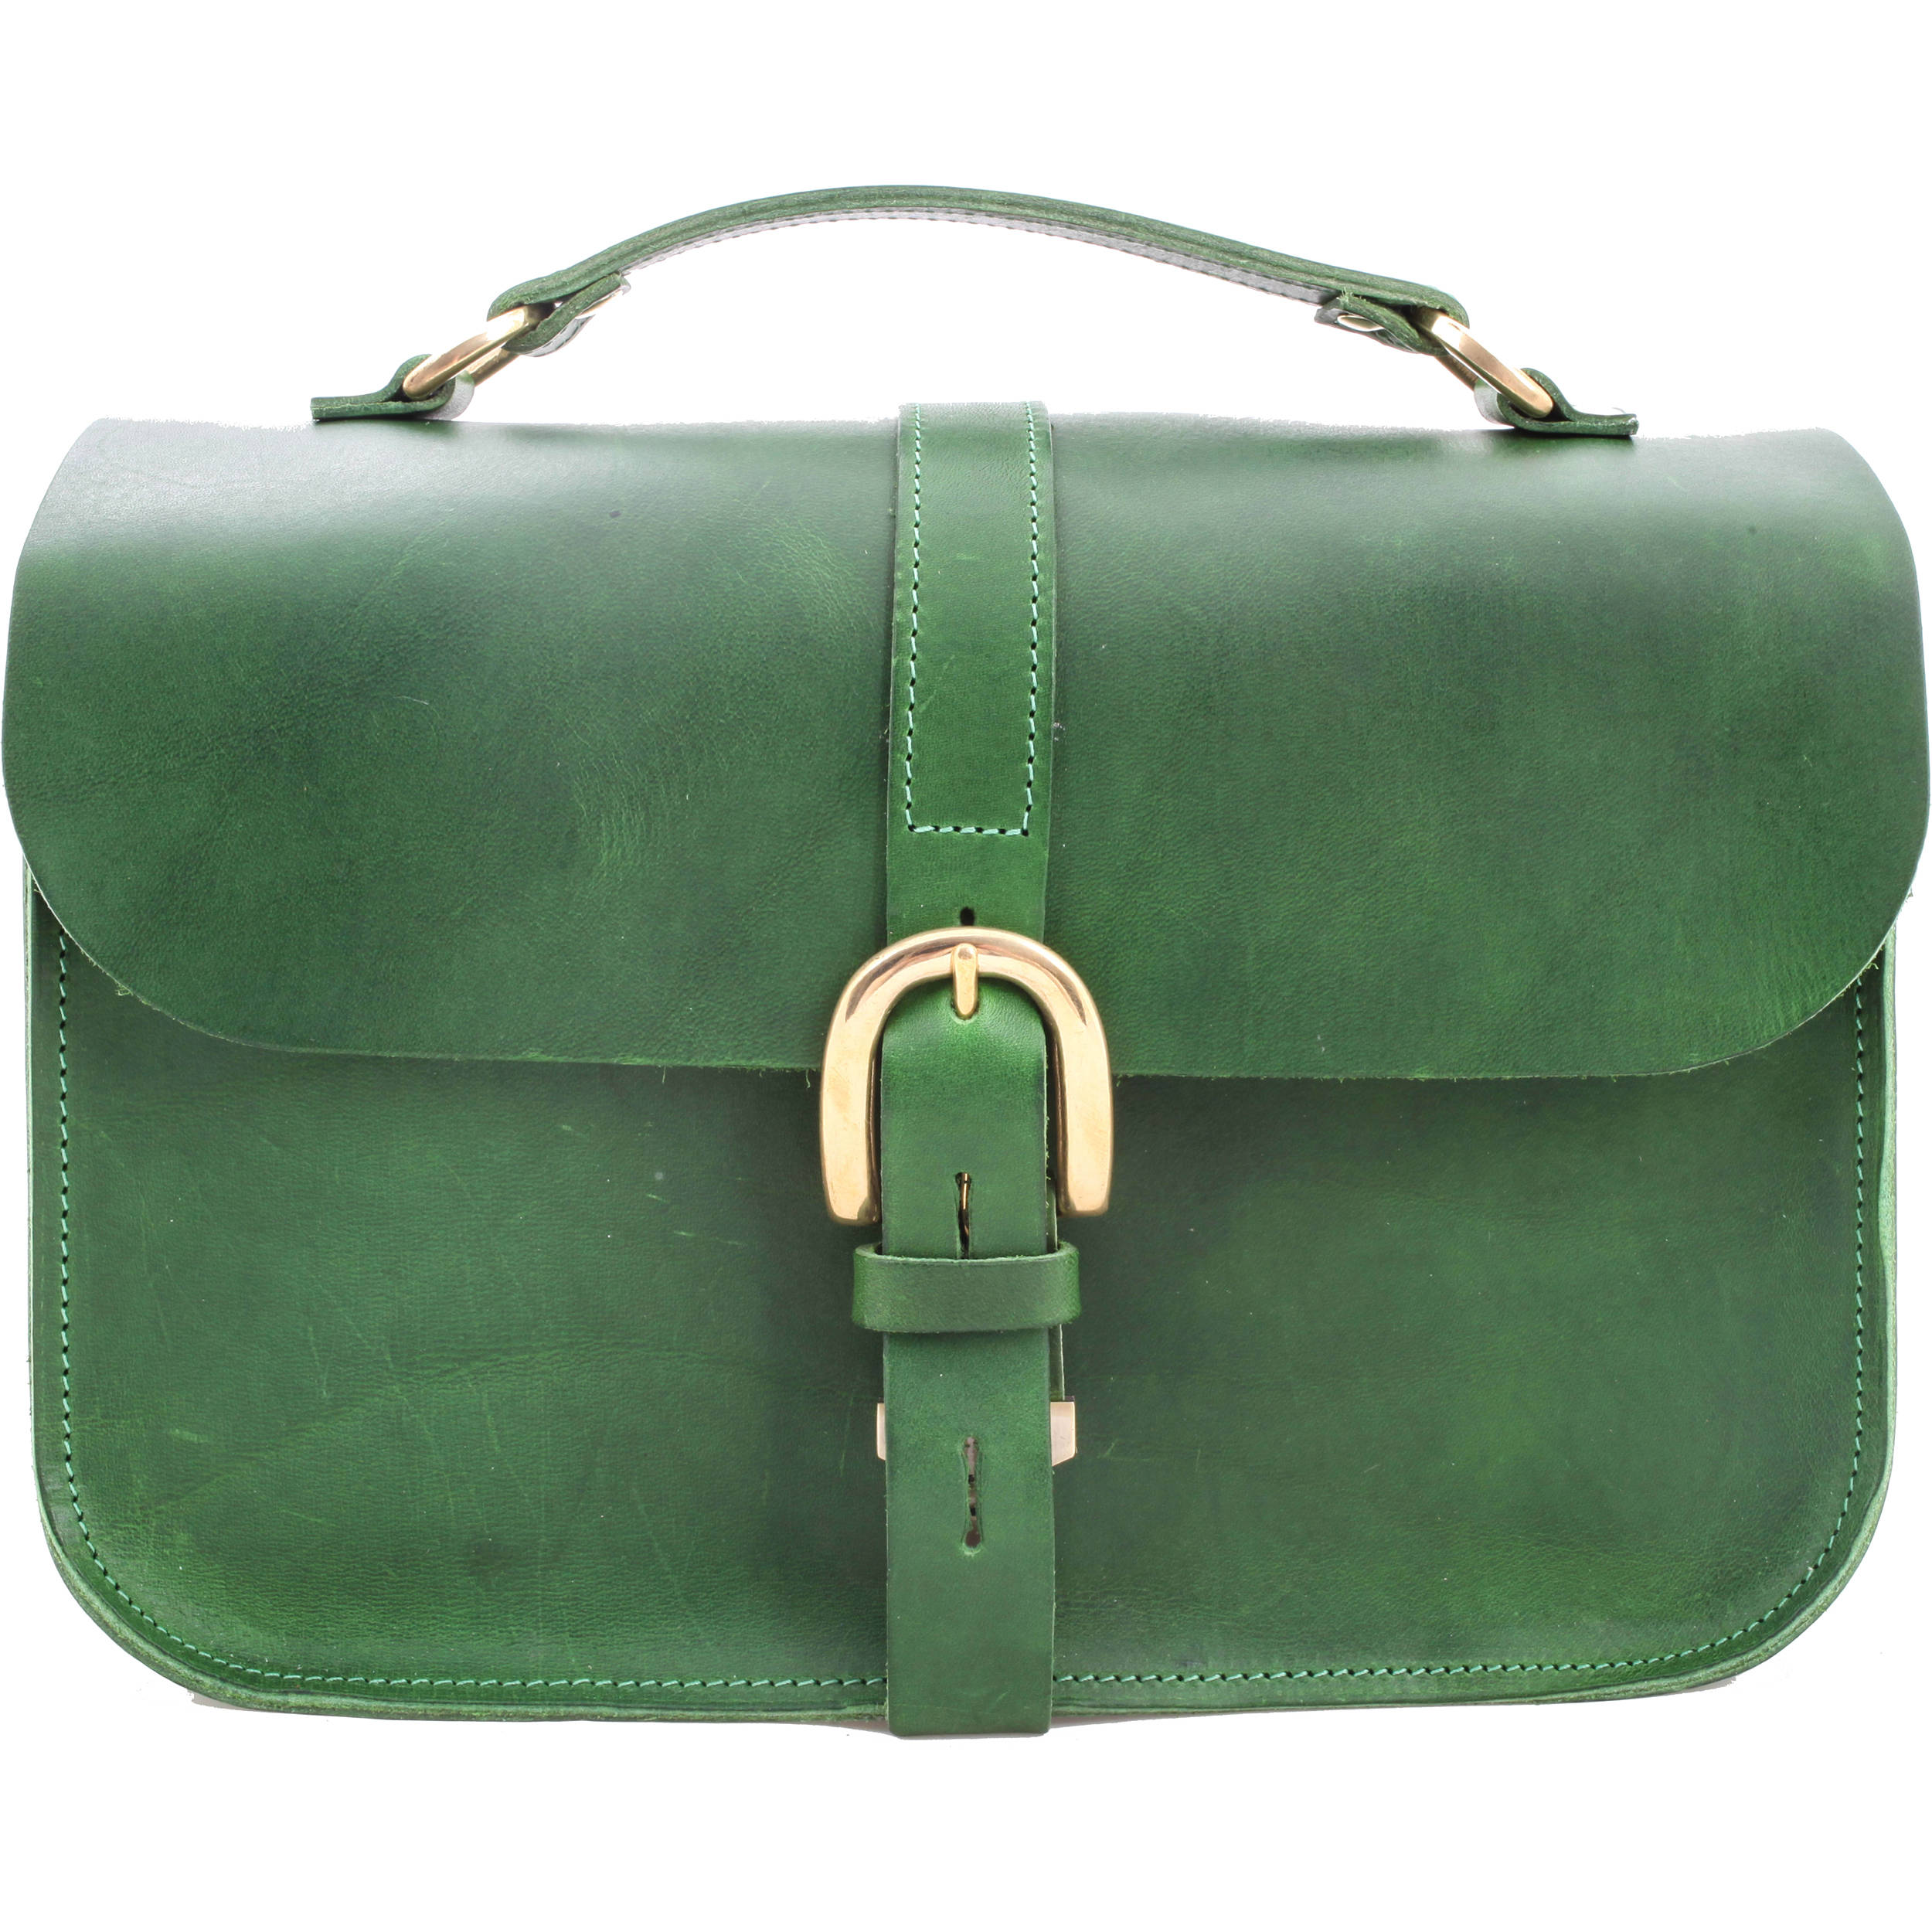 4854a7a7e455 Figbags The Lincoln Leather Bag (Green) 7 B H Photo Video